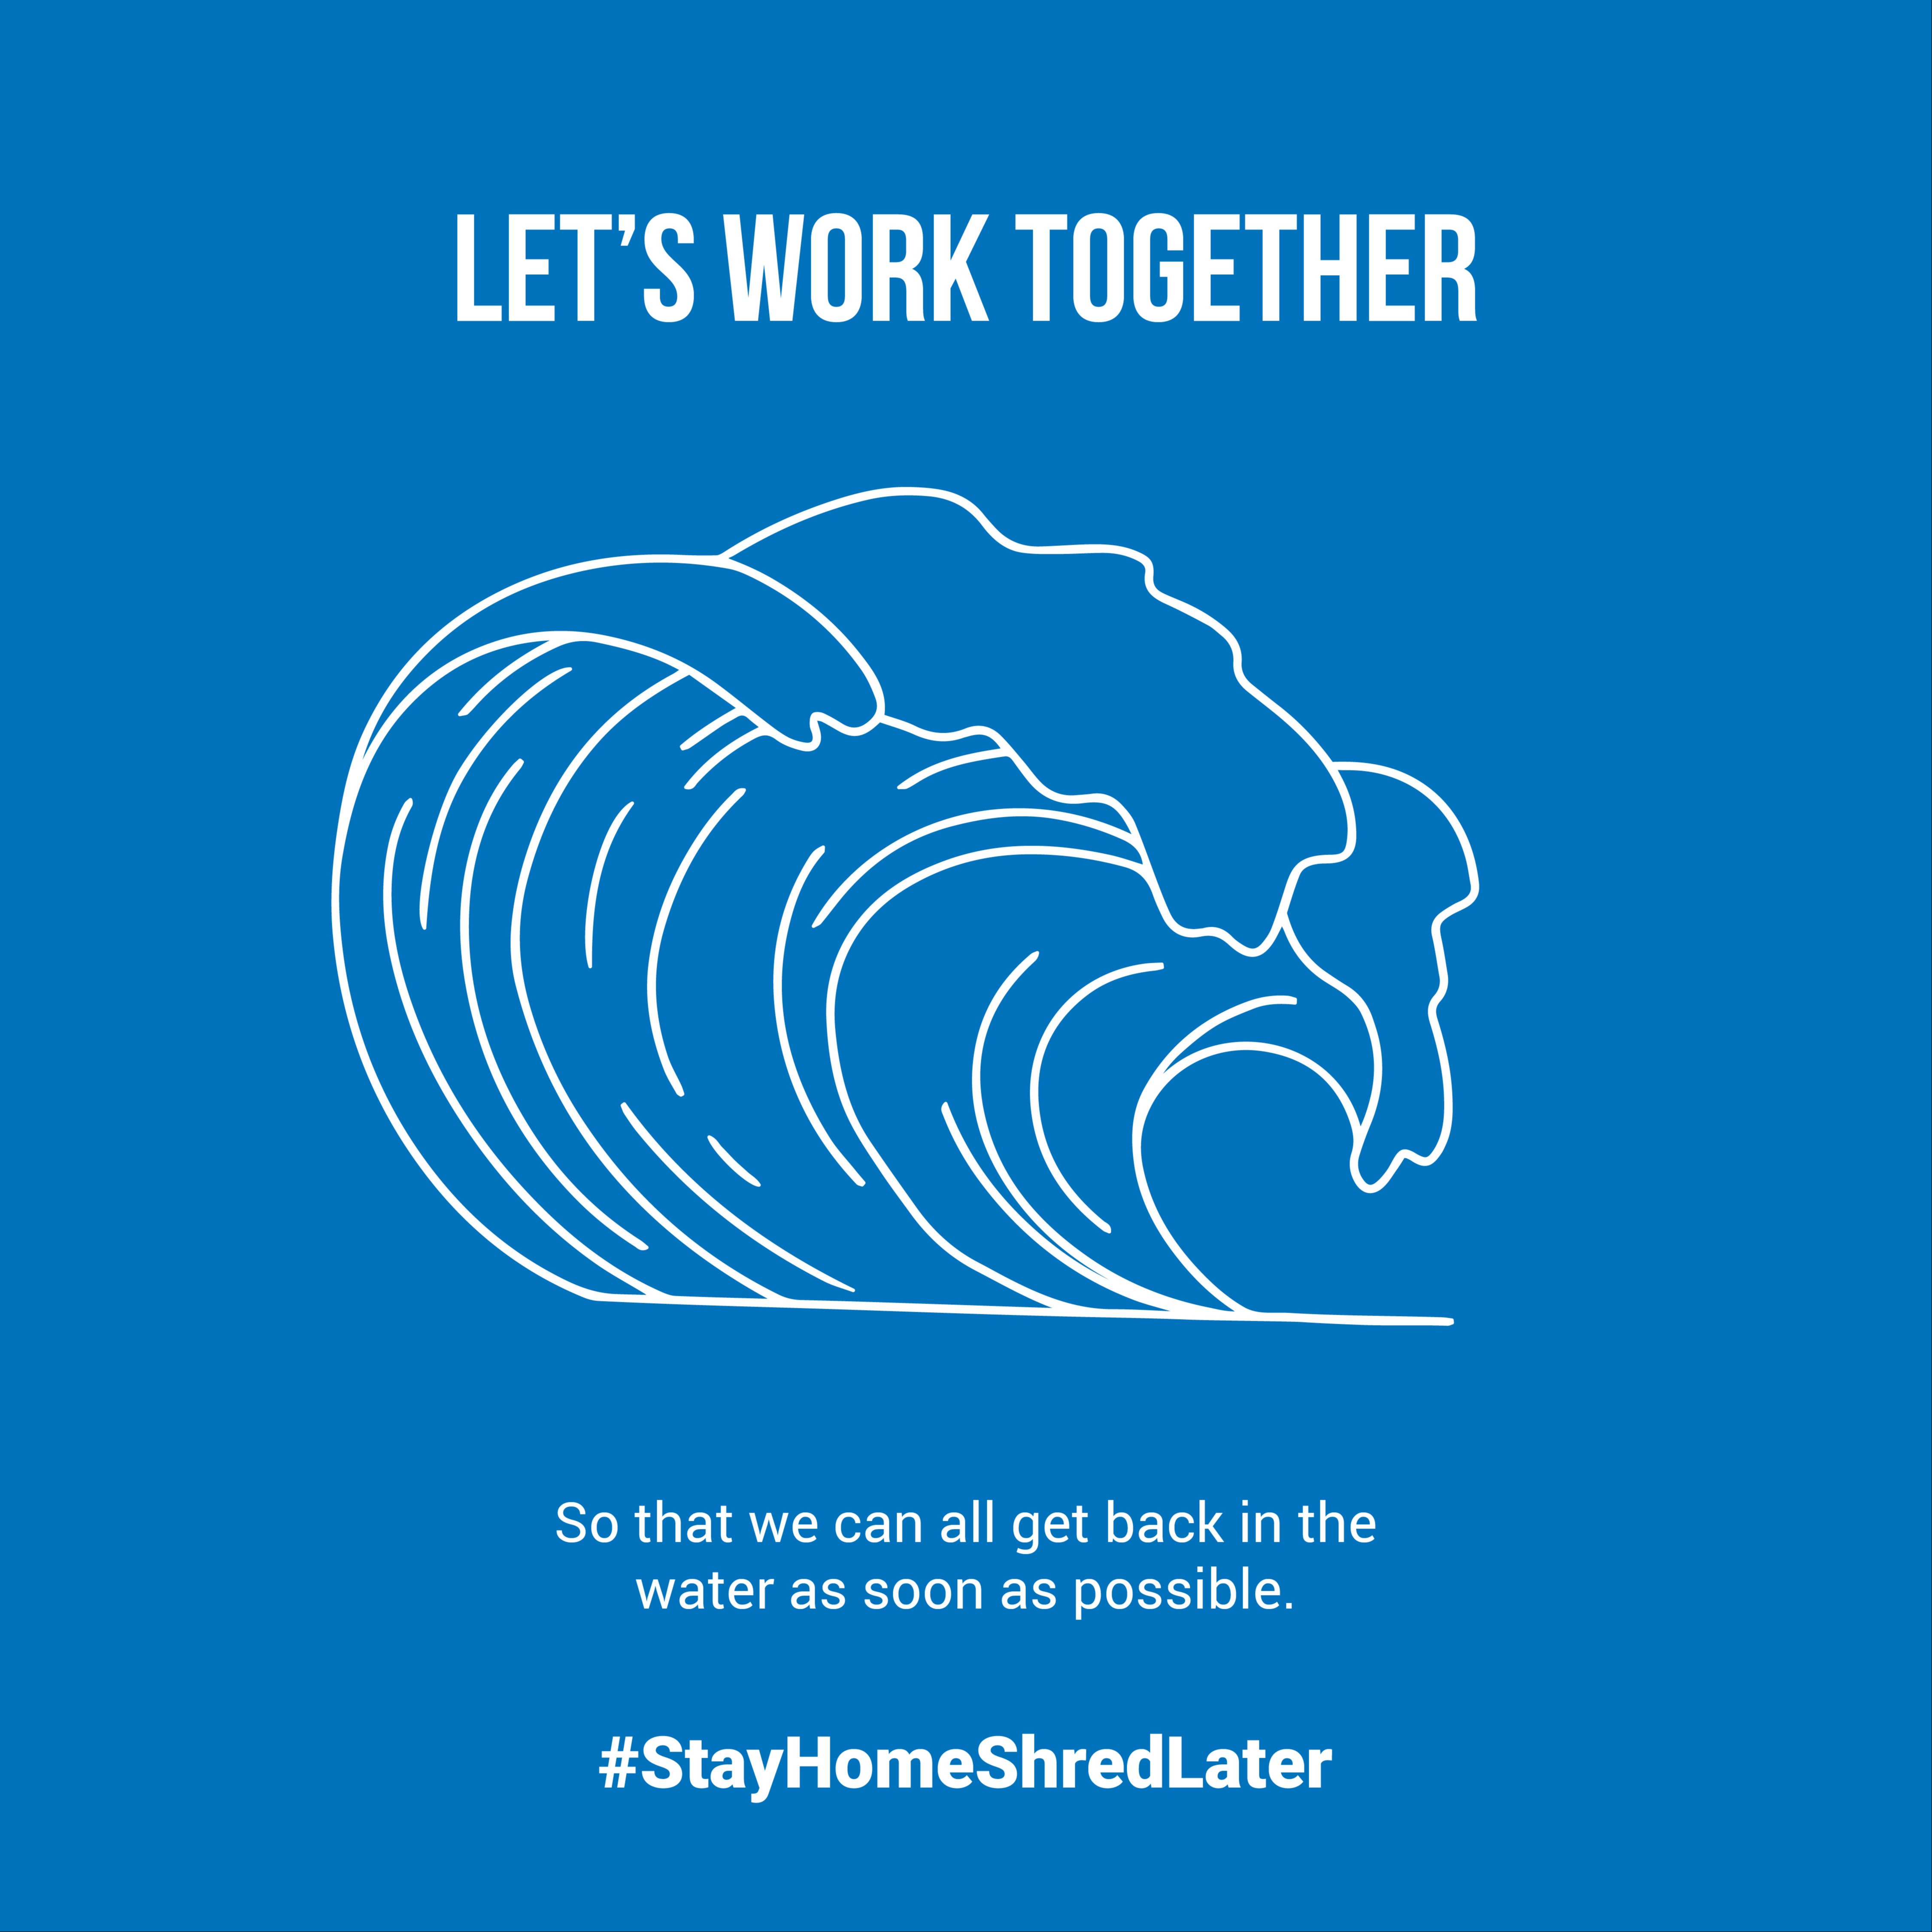 Tips to #StayHome ShredLater